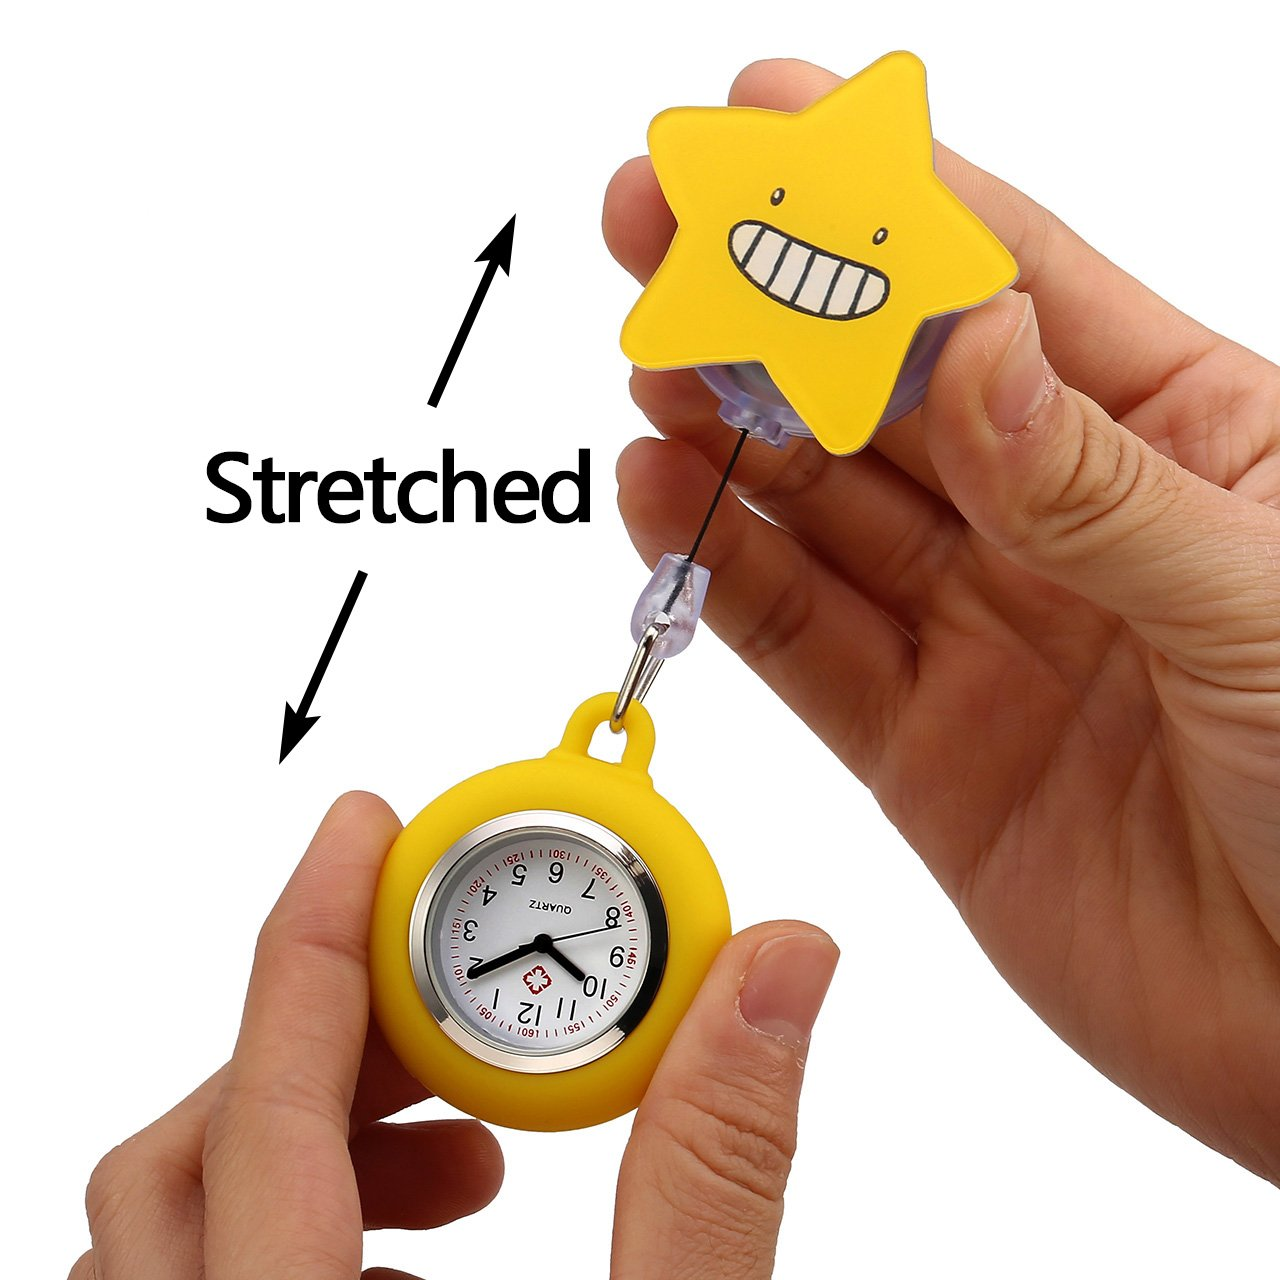 Top Plaza 3 Pcs Girls' Kid's Cute Lovely Cartoon Pattern Silicone Clip on Fob Brooch Hanging Easy Pull Clasp Stretch Analog Quartz Pocket Nurse Watches #2 by Top Plaza (Image #2)